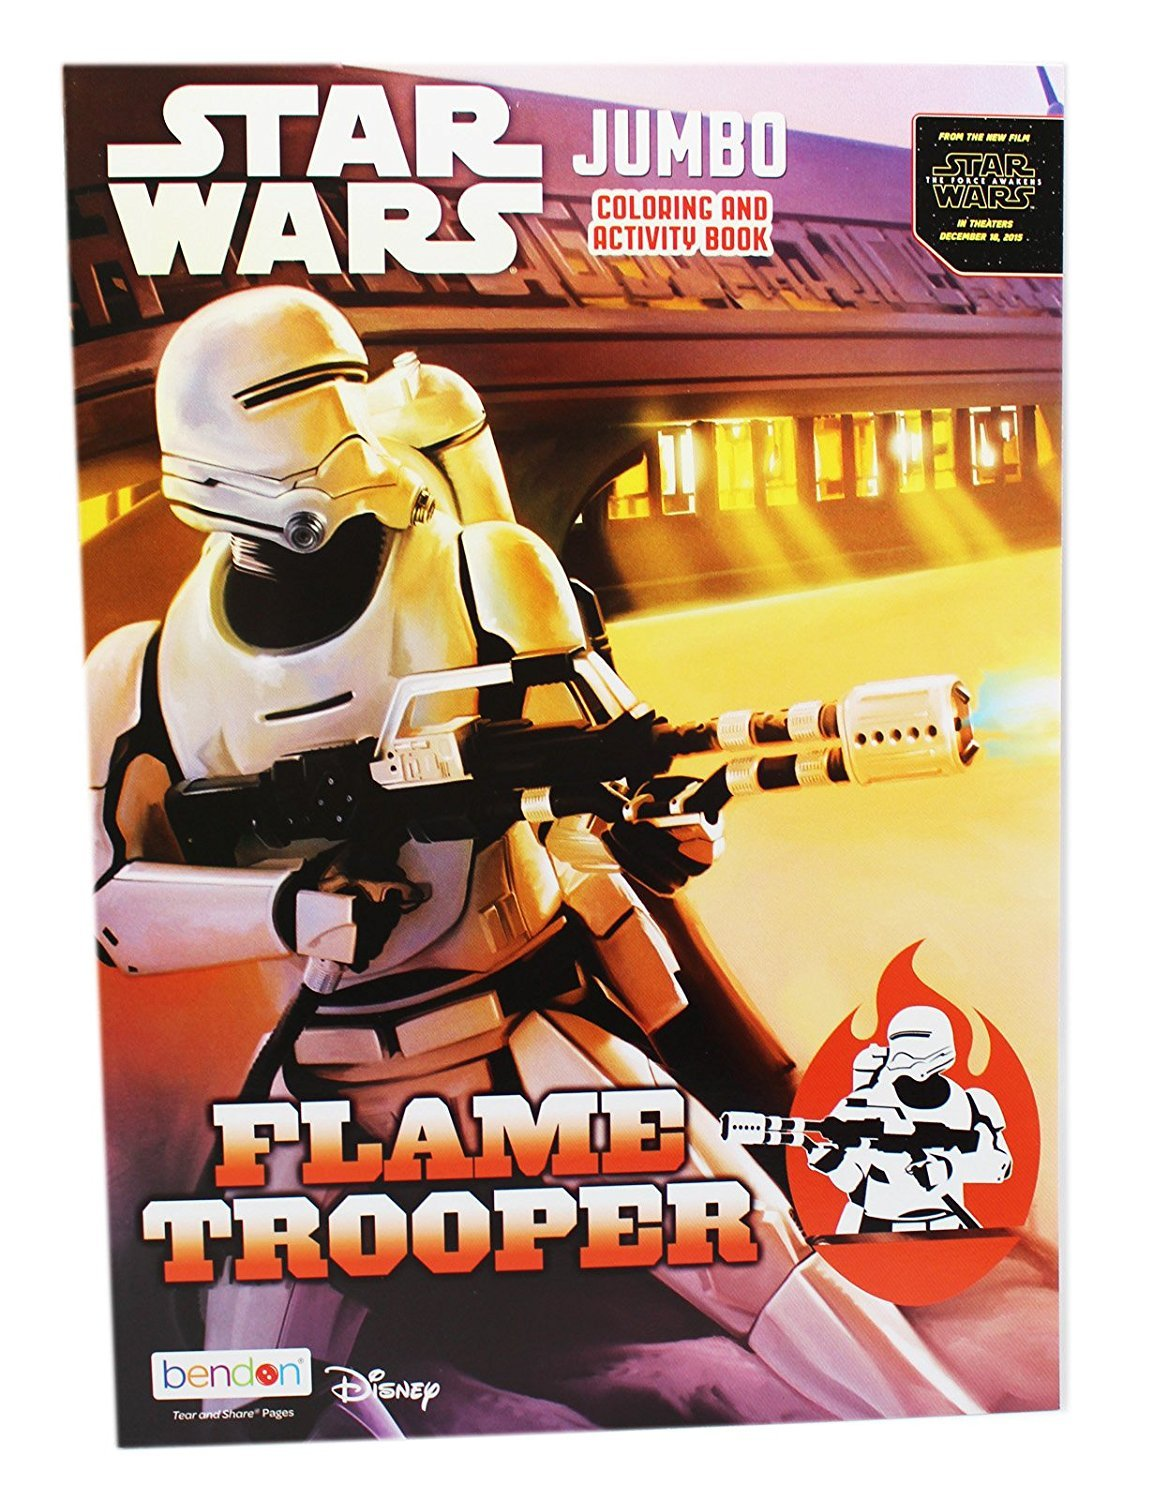 Star Wars Flame Trooper Jumbo Coloring and Activity Book